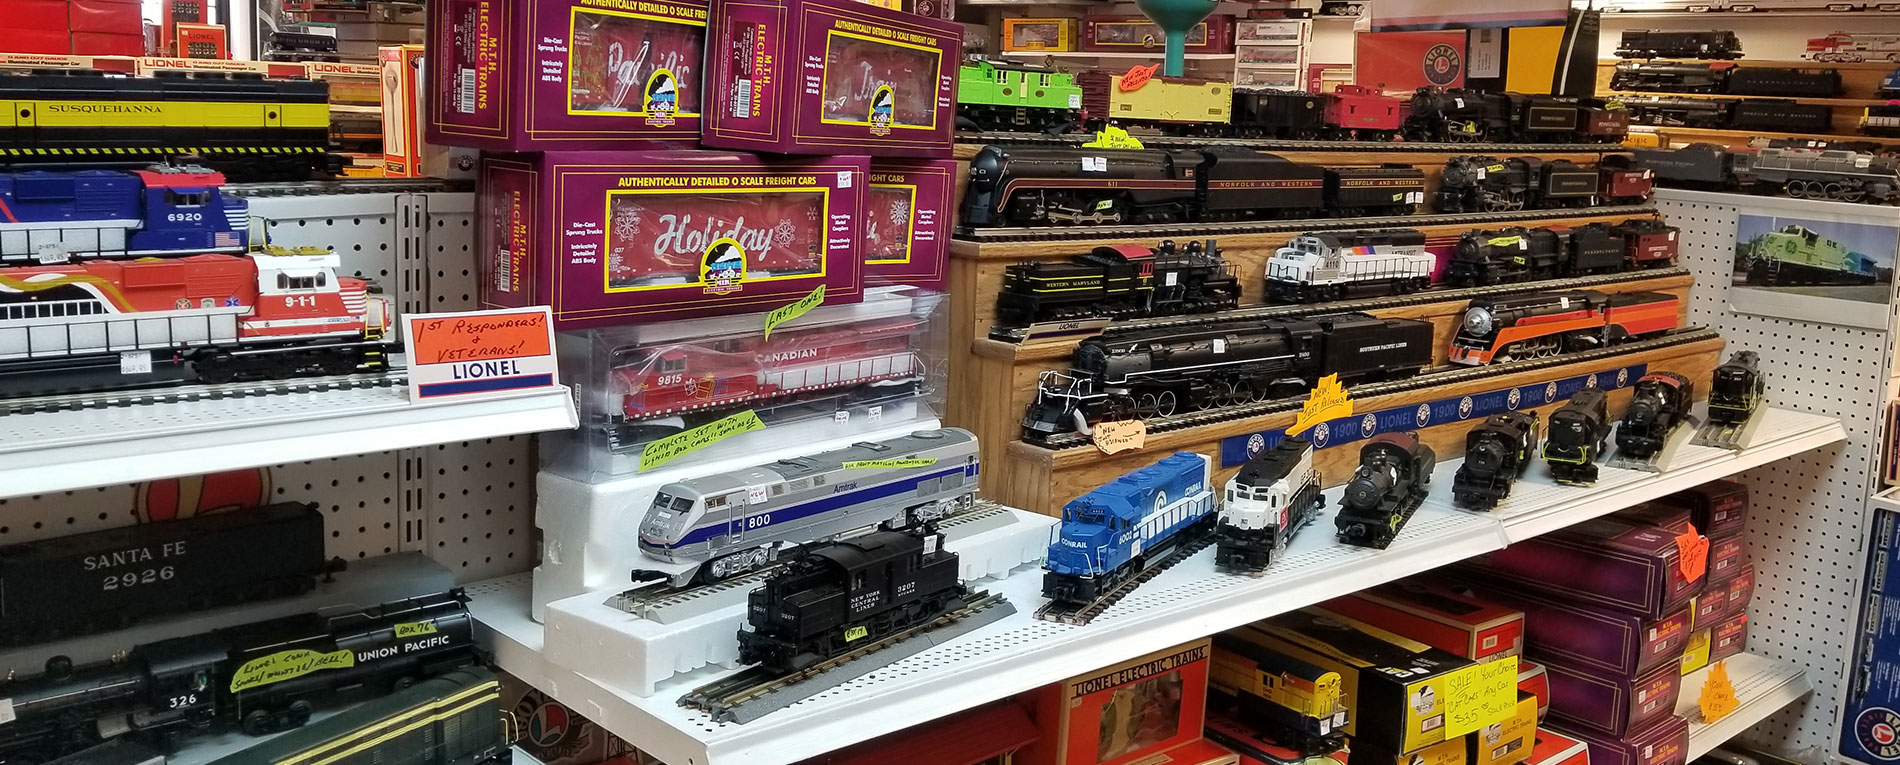 shelf of trains